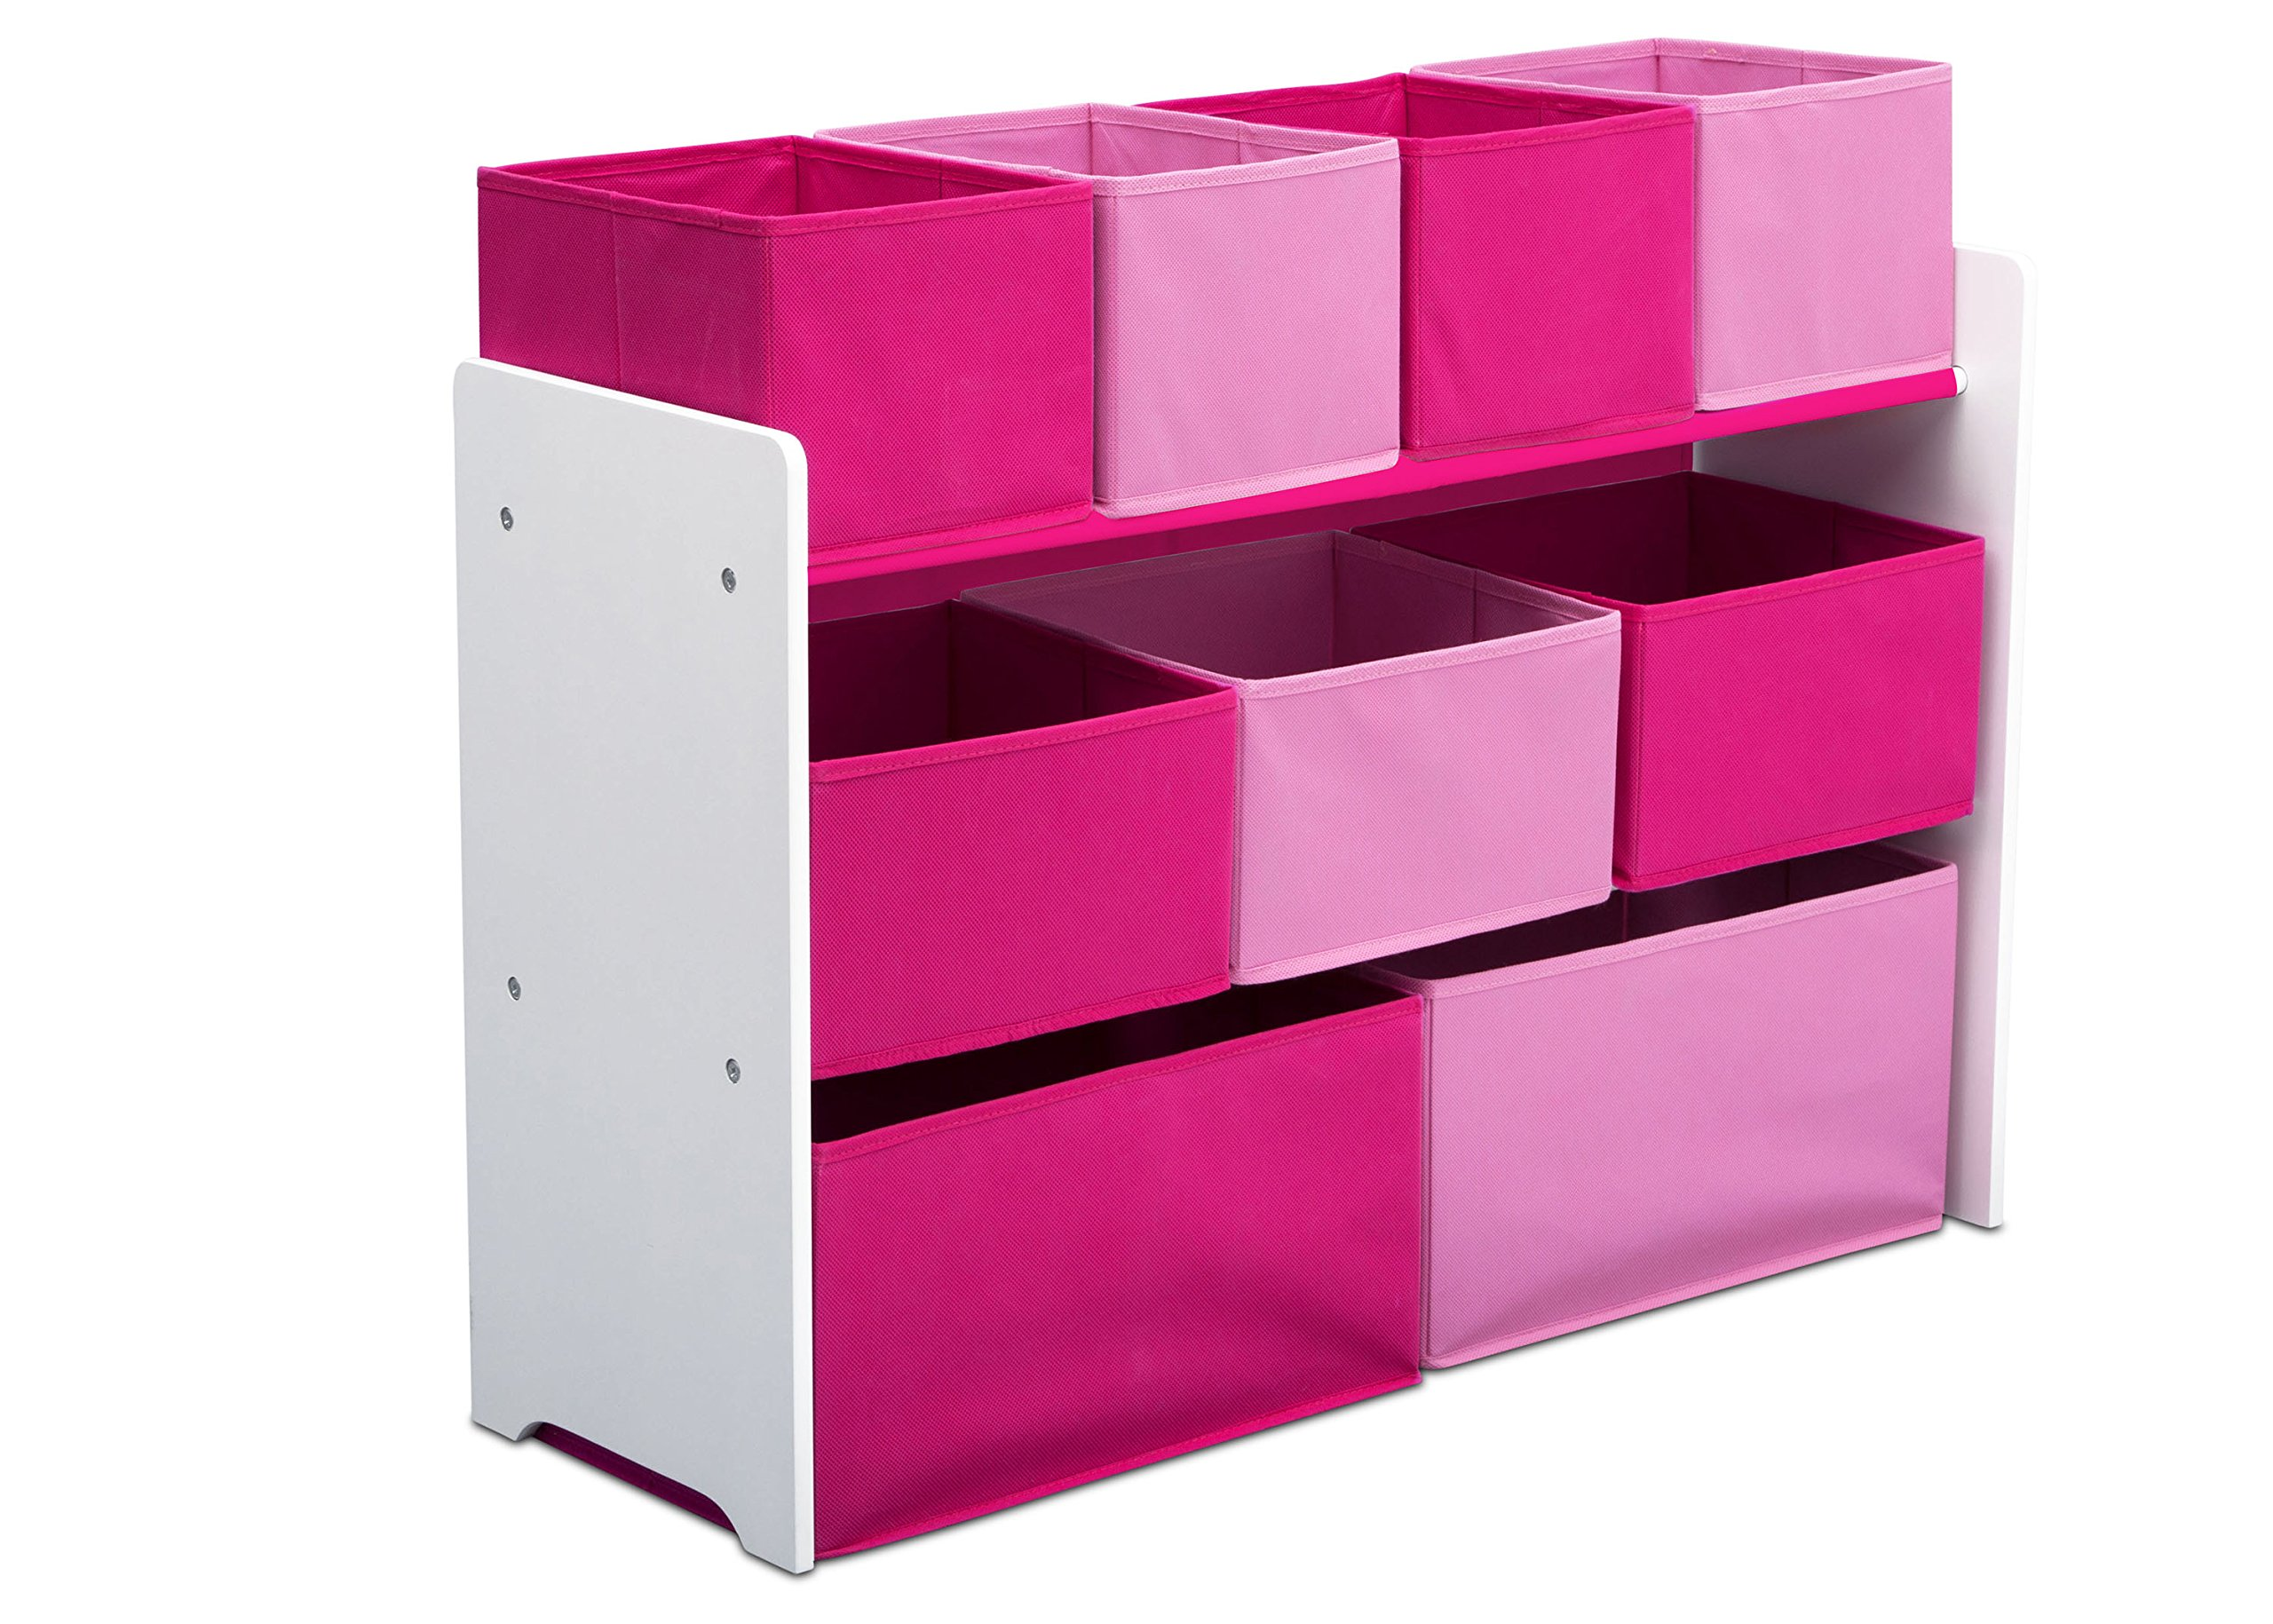 Minnie Mouse Bedroom 3 Drawer Storage Kids Wooden Box Pink: Amazon.com: Kid's Cushioned Storage Bench With 3 Basket